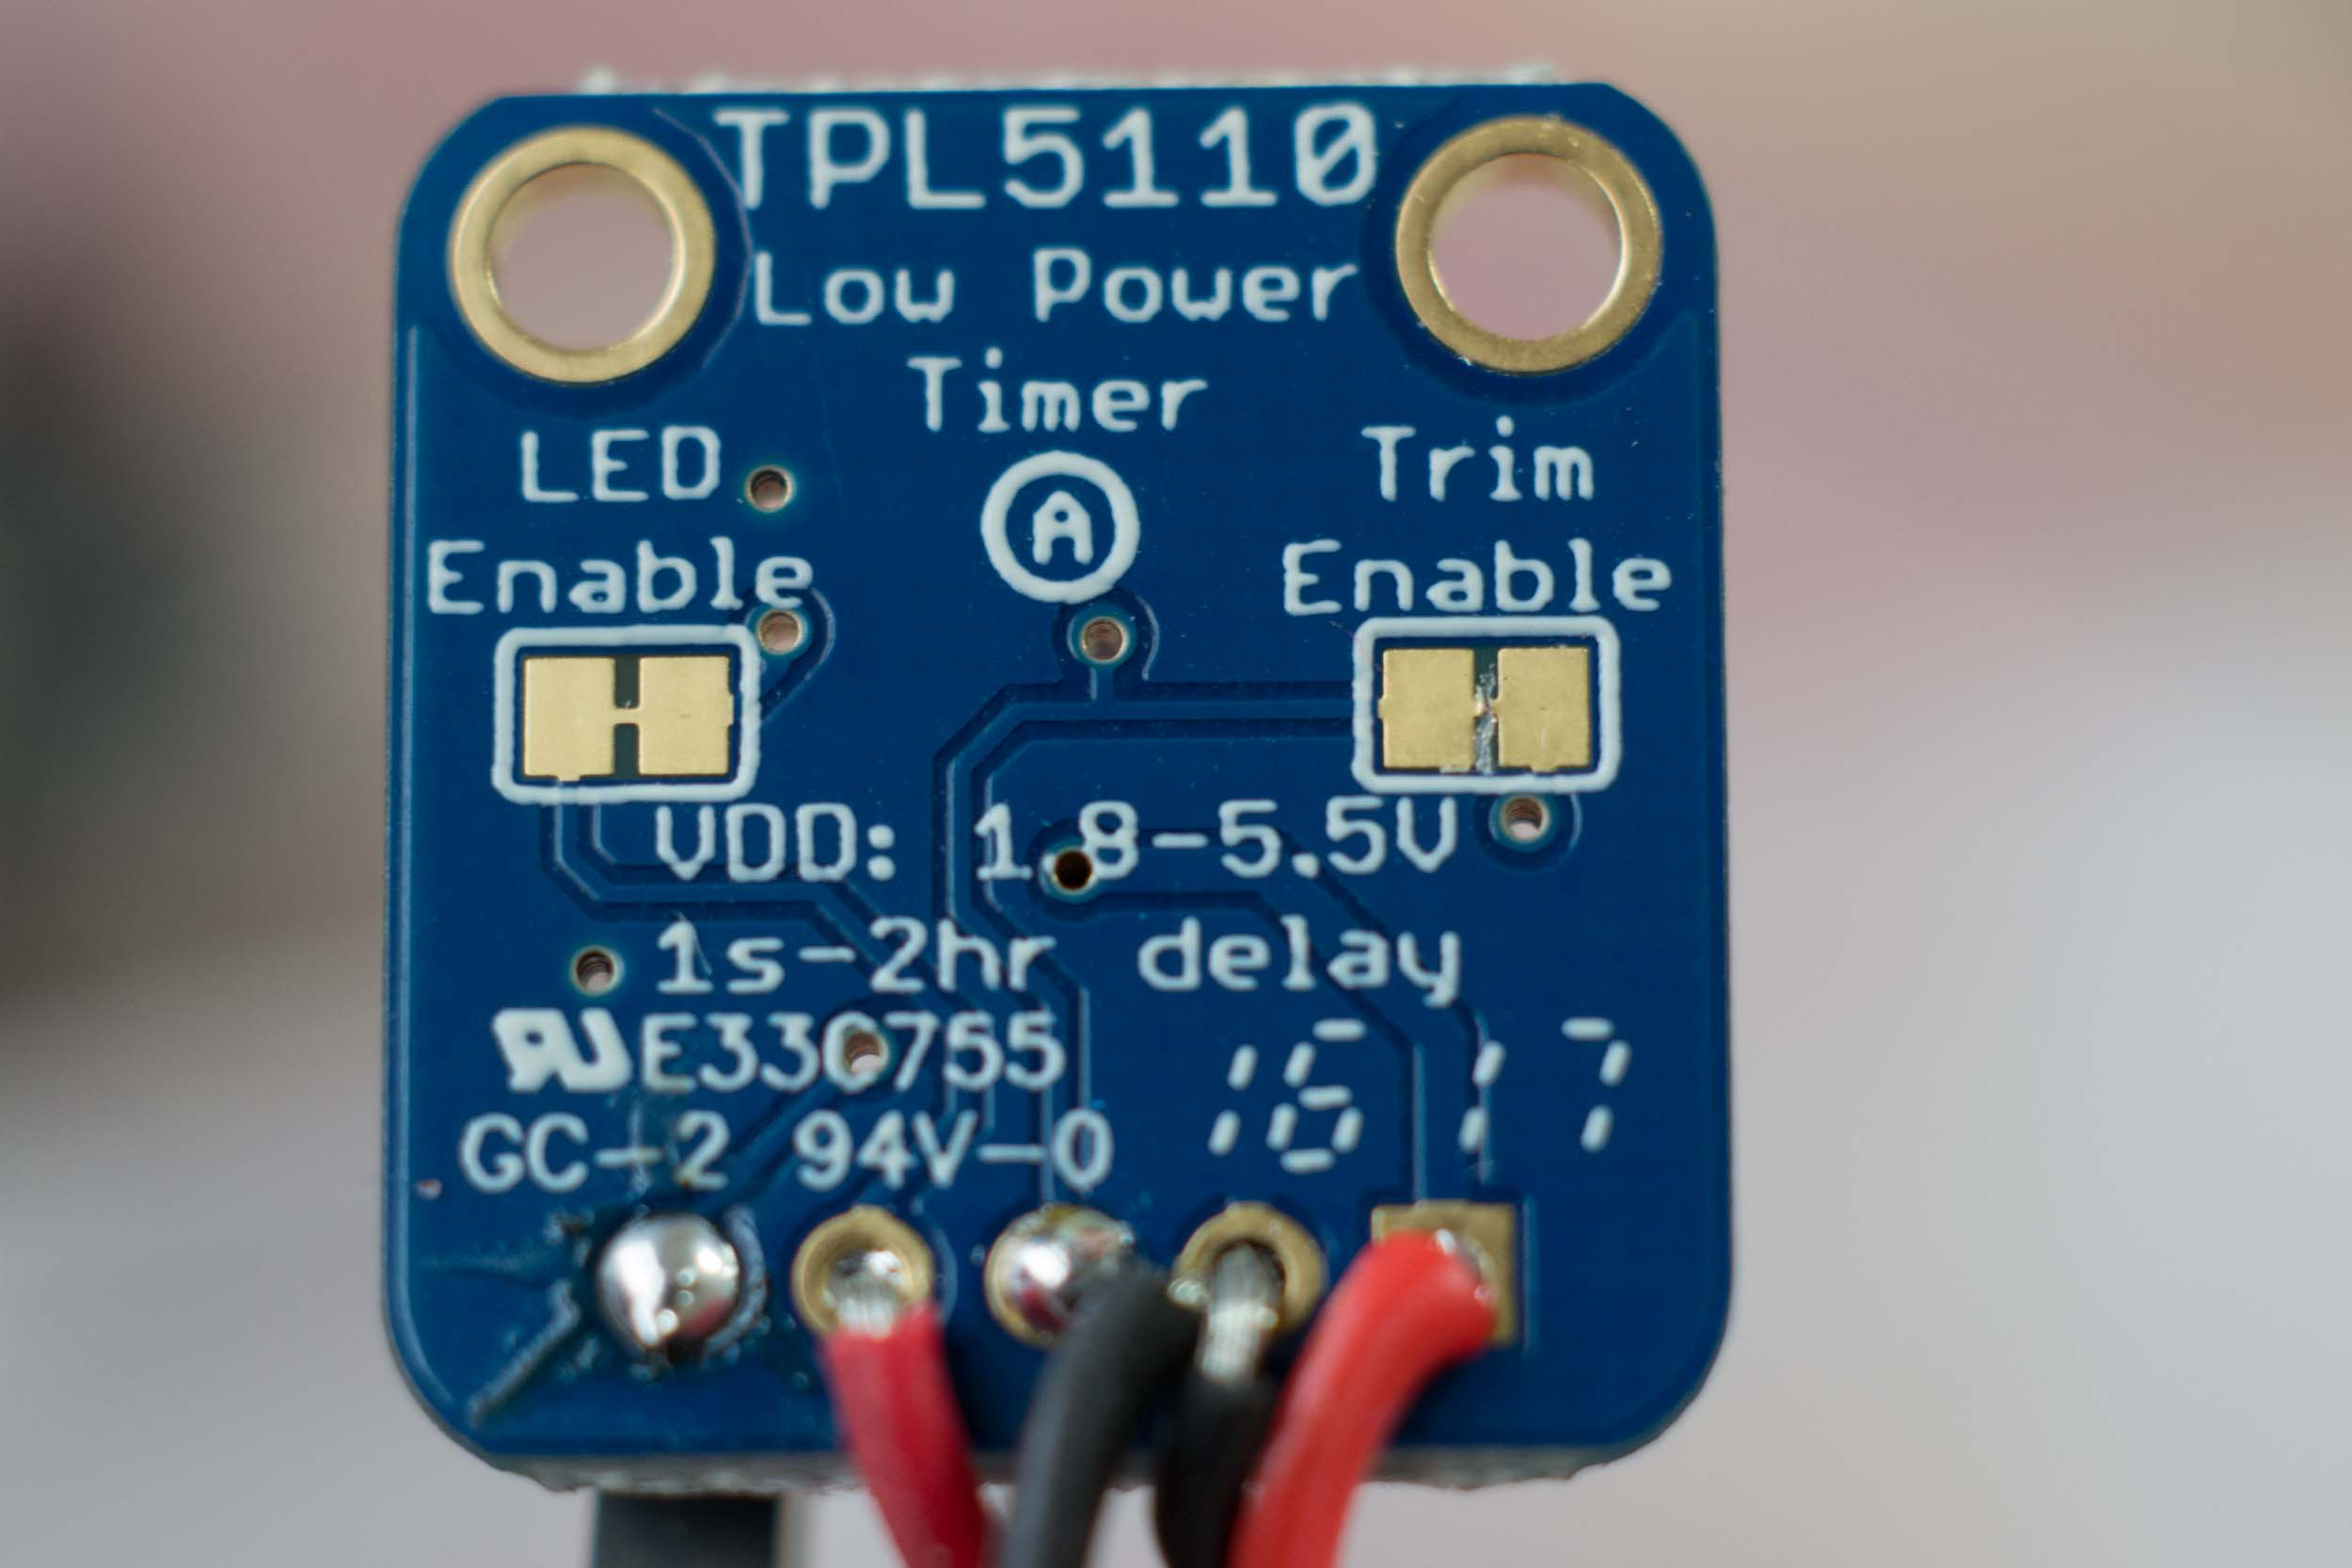 🎈 Public Lab: Log all the data with Adafruit's TPL5110 Low